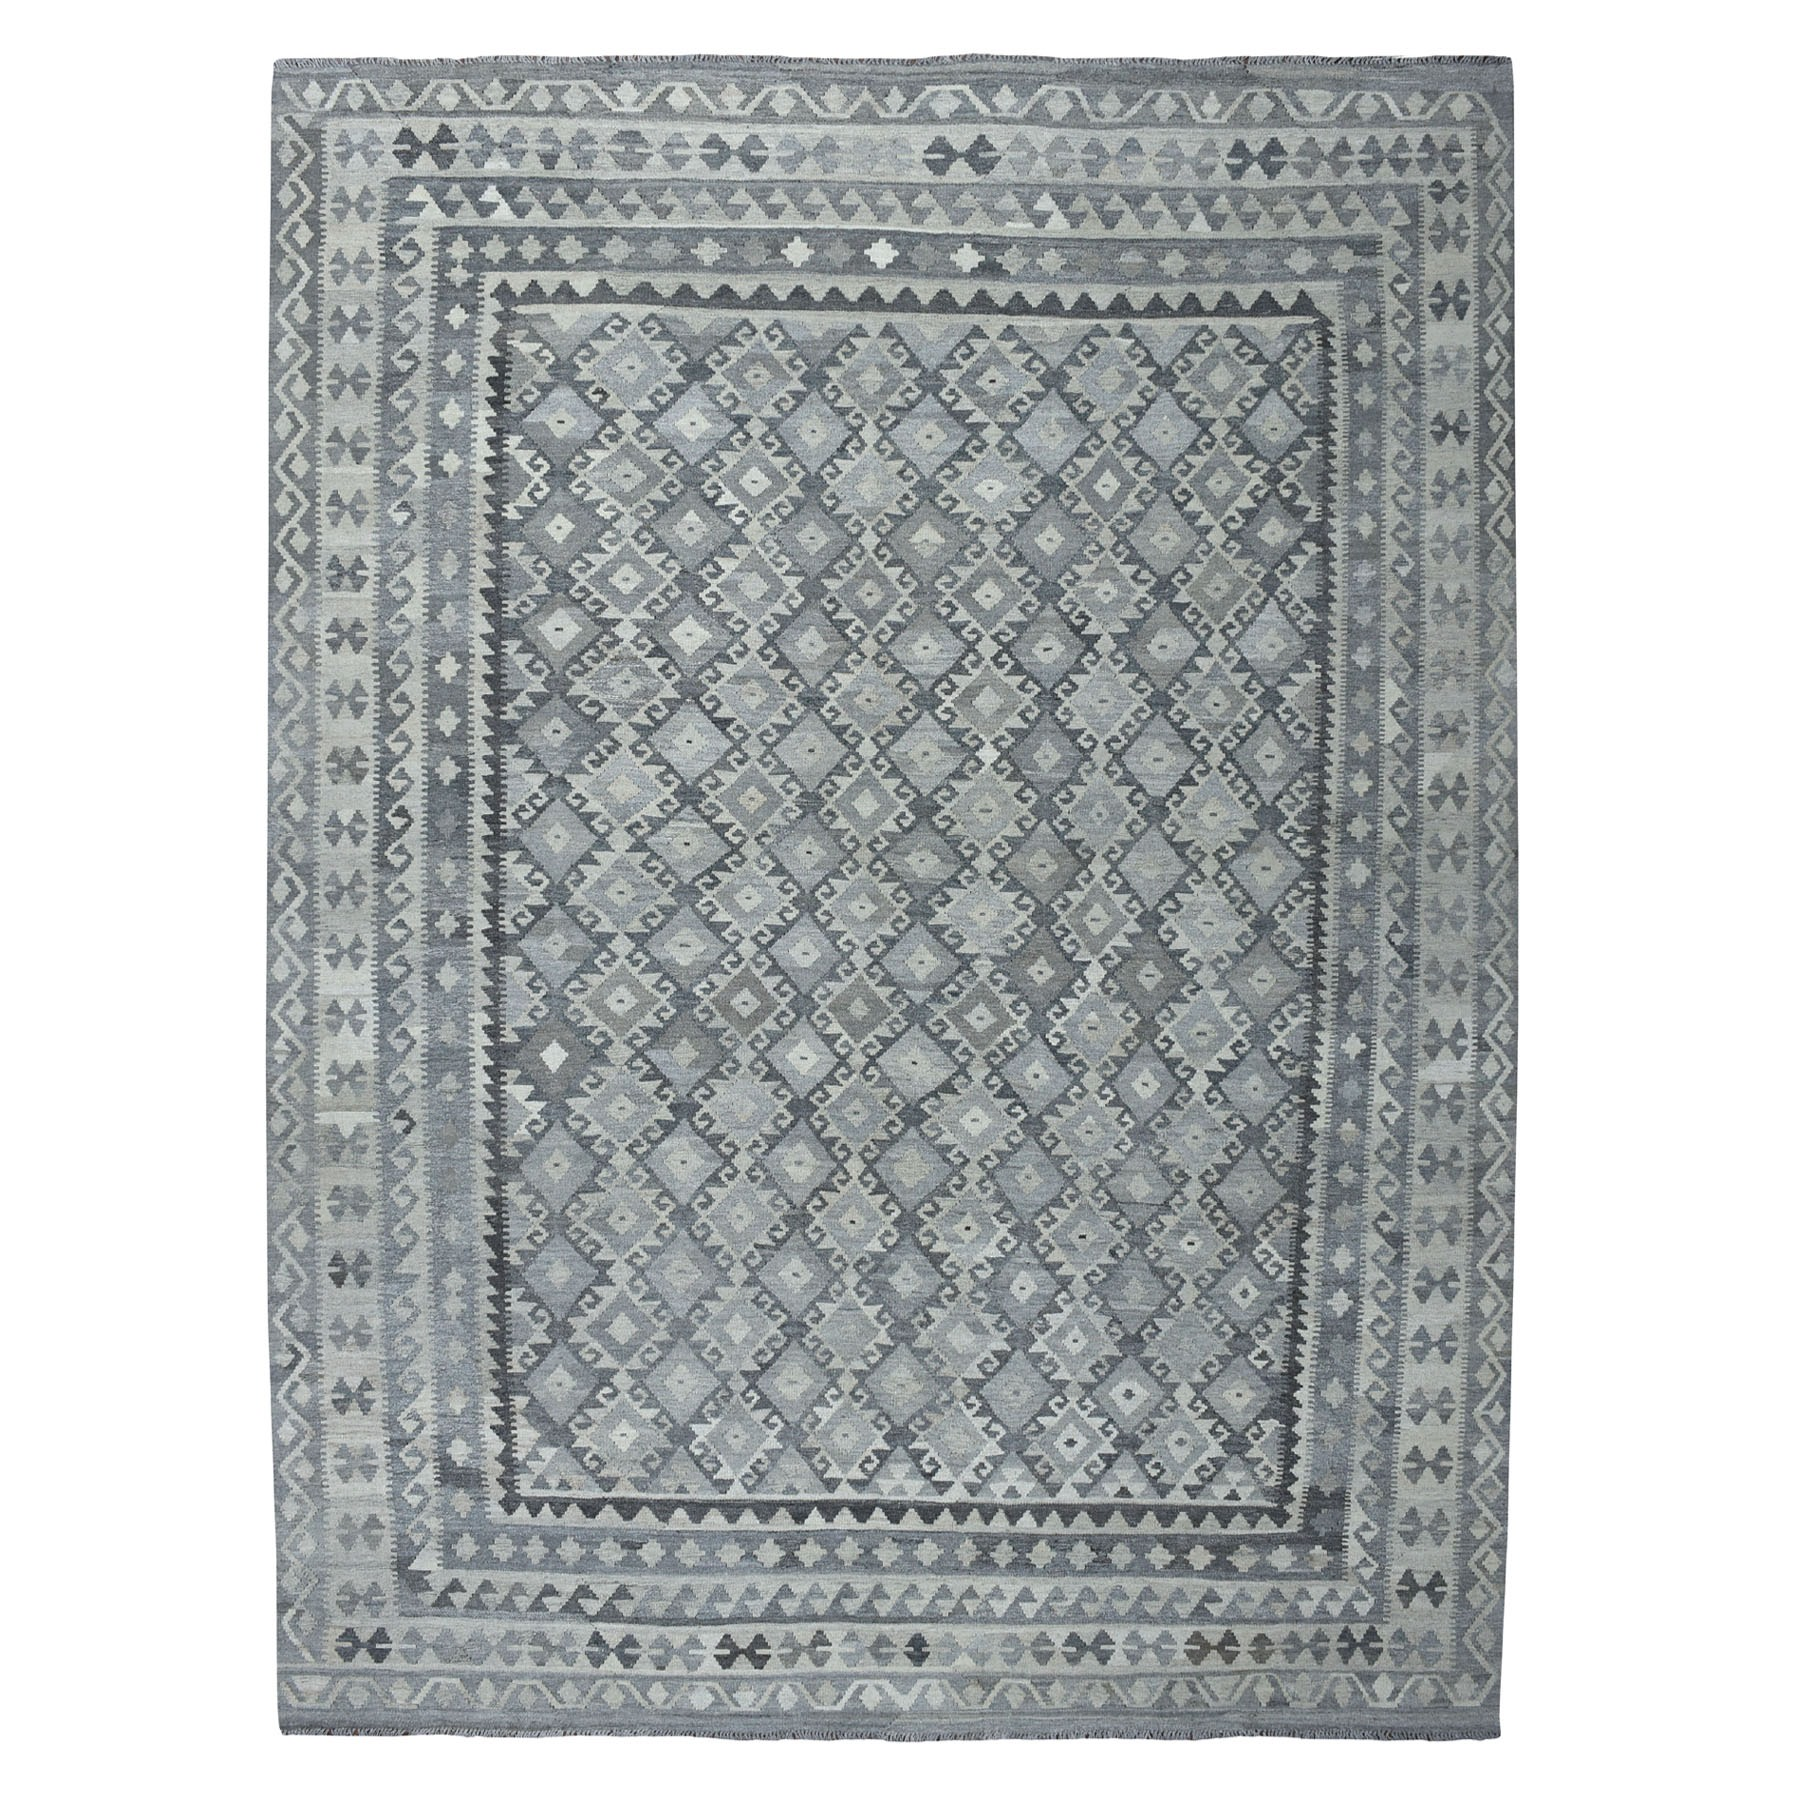 """8'8""""X11'3"""" Undyed Natural Wool Afghan Kilim Reversible Hand Woven Oriental Rug moaecdde"""